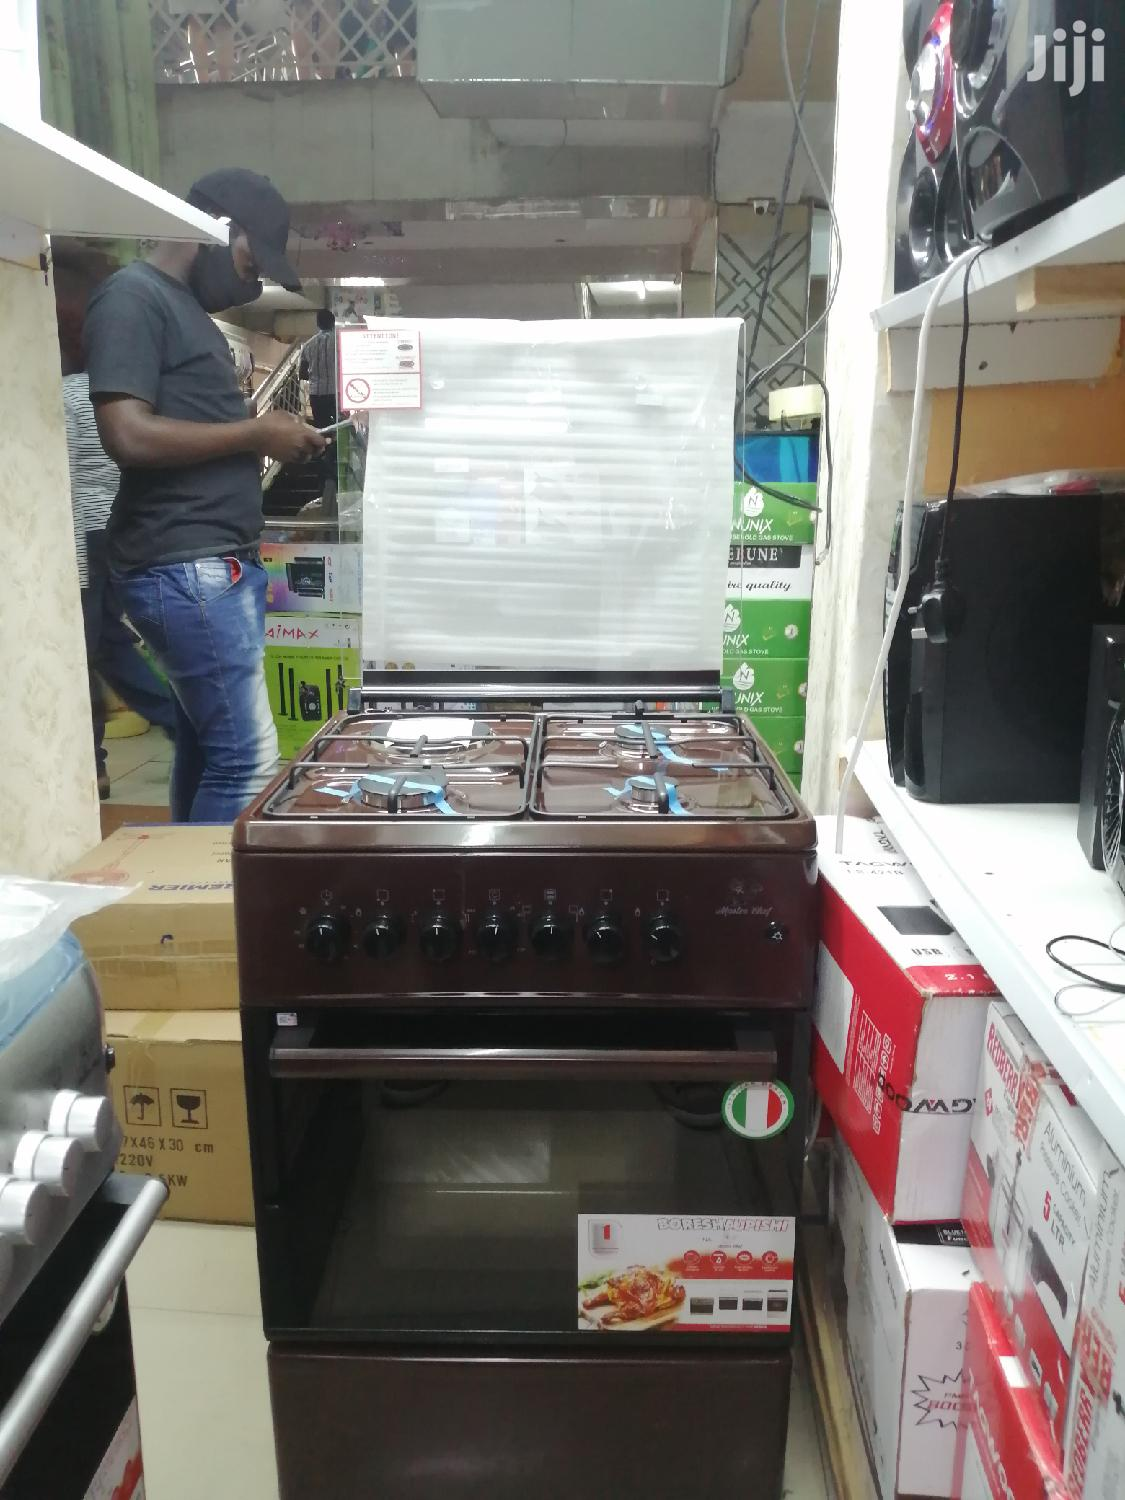 Masterchef Standing Cookers, 3 Gas 1 H.Plate, Electric Oven, 60x60cm